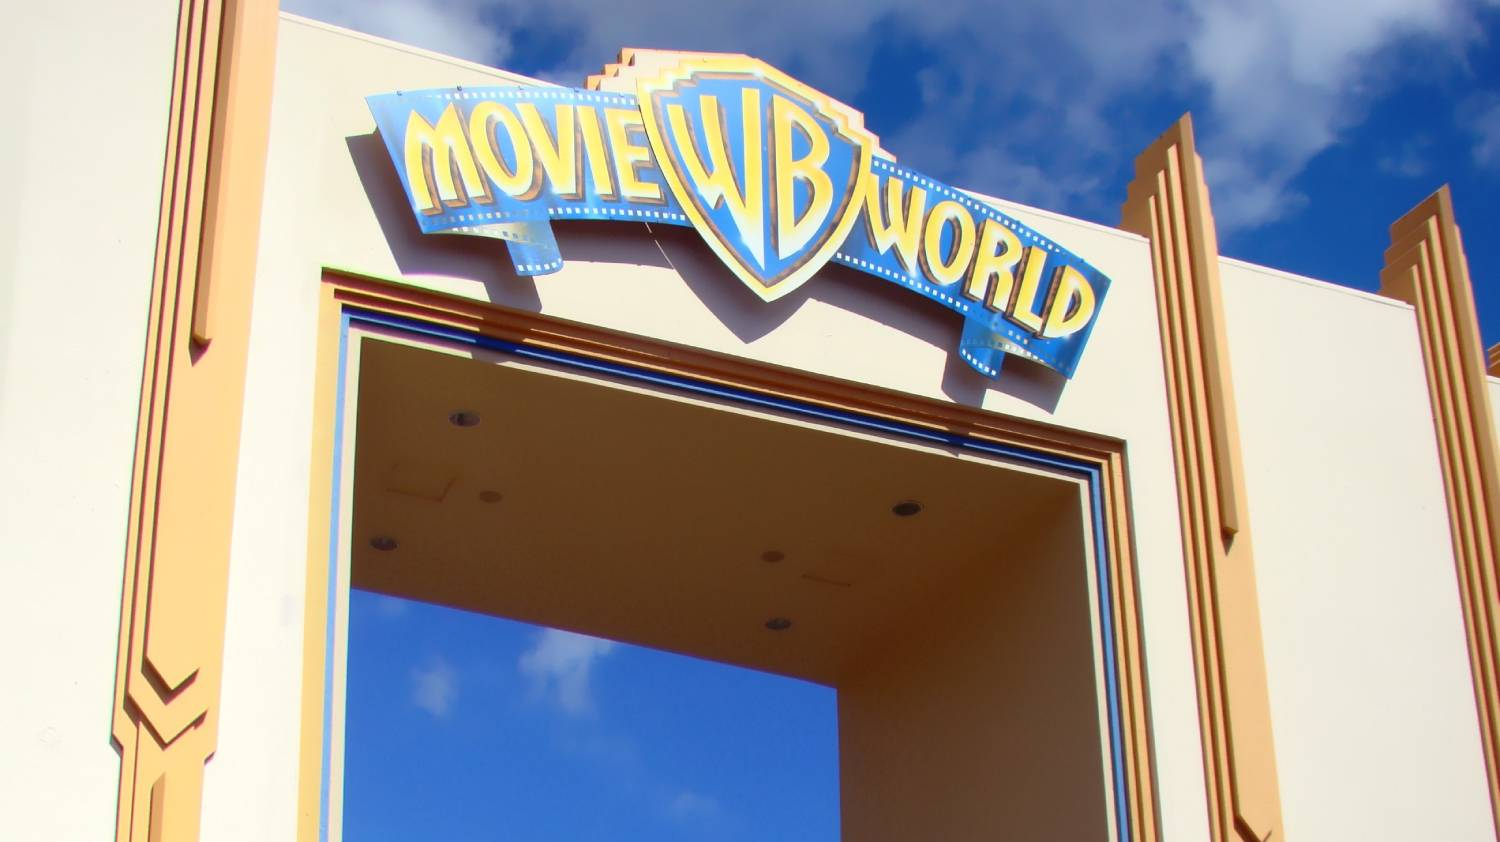 Warner Bros. Movie World - Things To Do On The Gold Coast